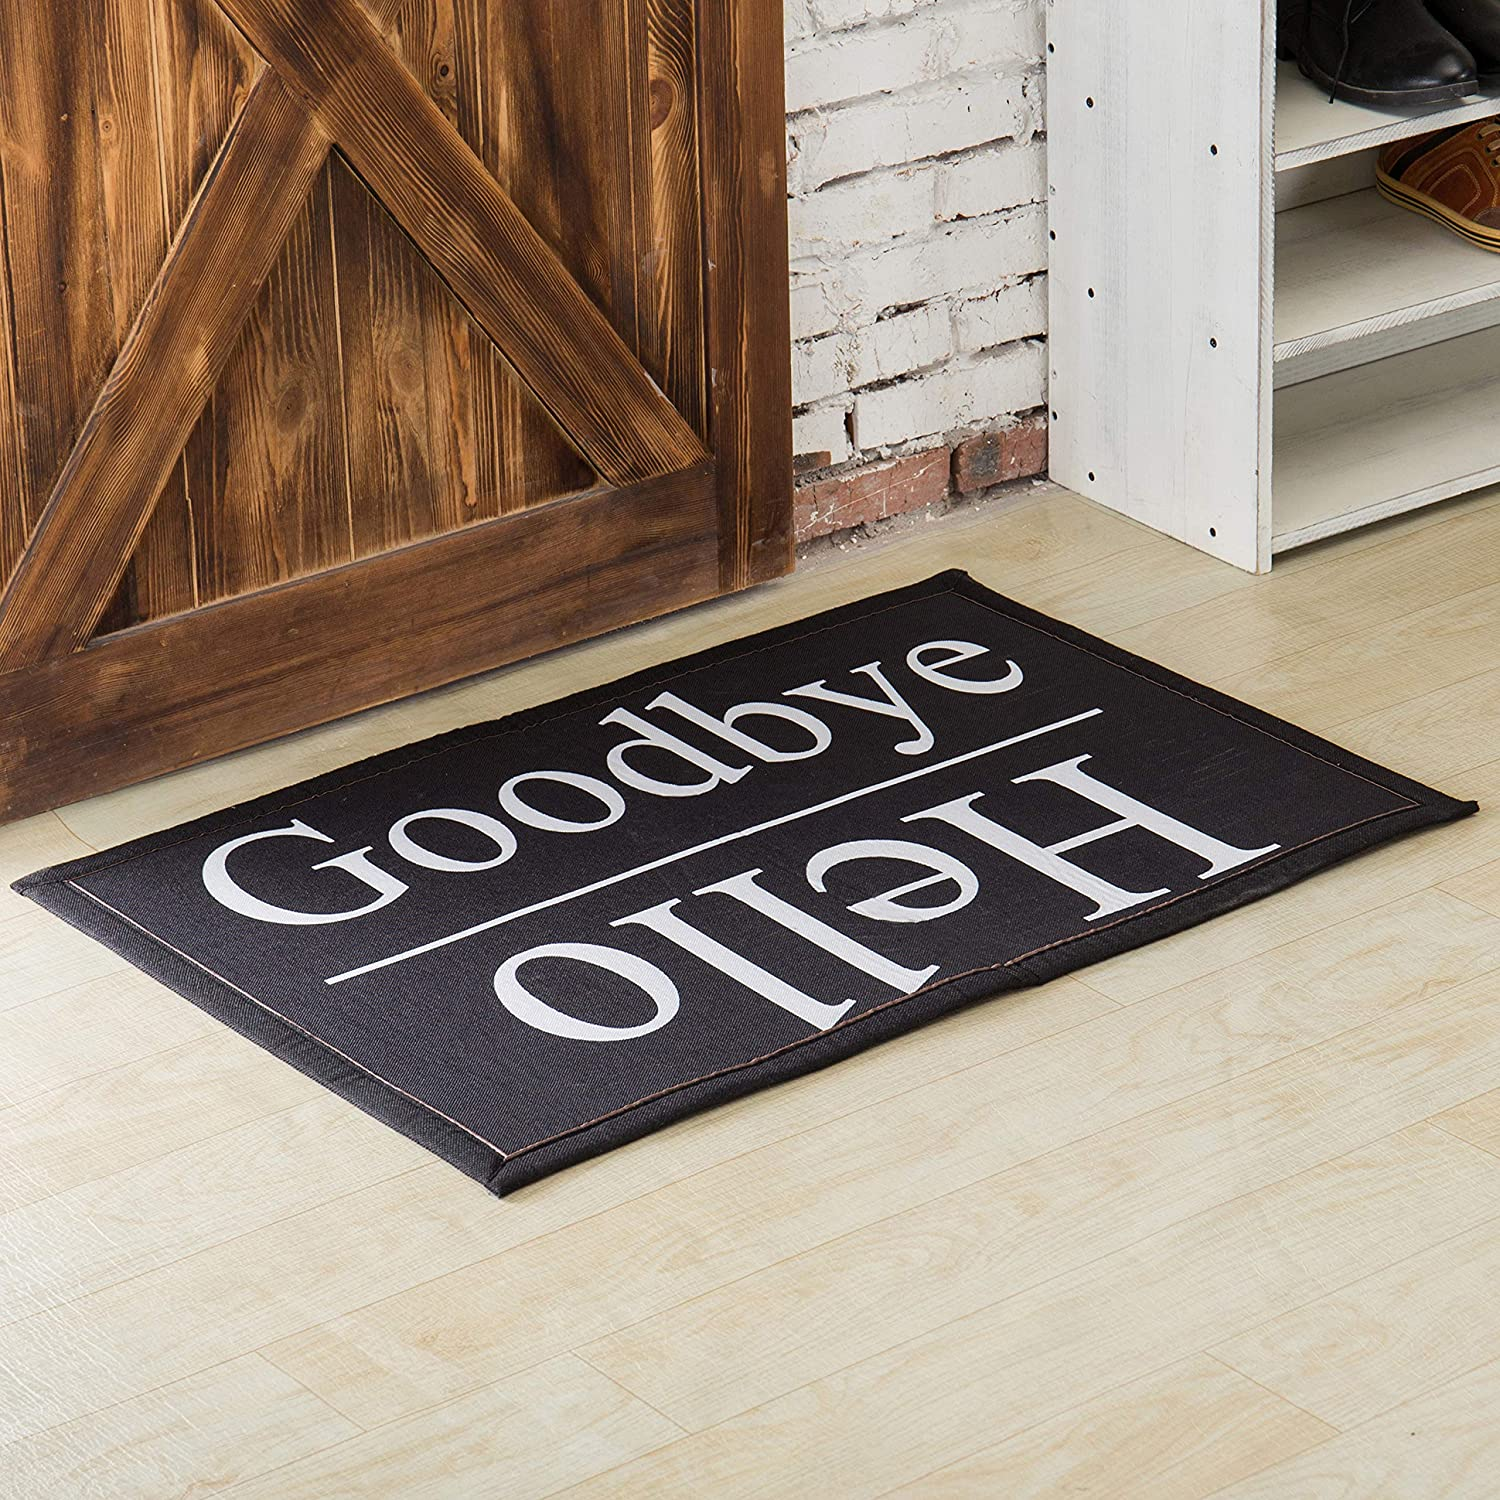 2 x 3 ft Front Entrance Hello Goodbye Polyester Non-Slip Doormat, Housewarming Gift Welcome Mat